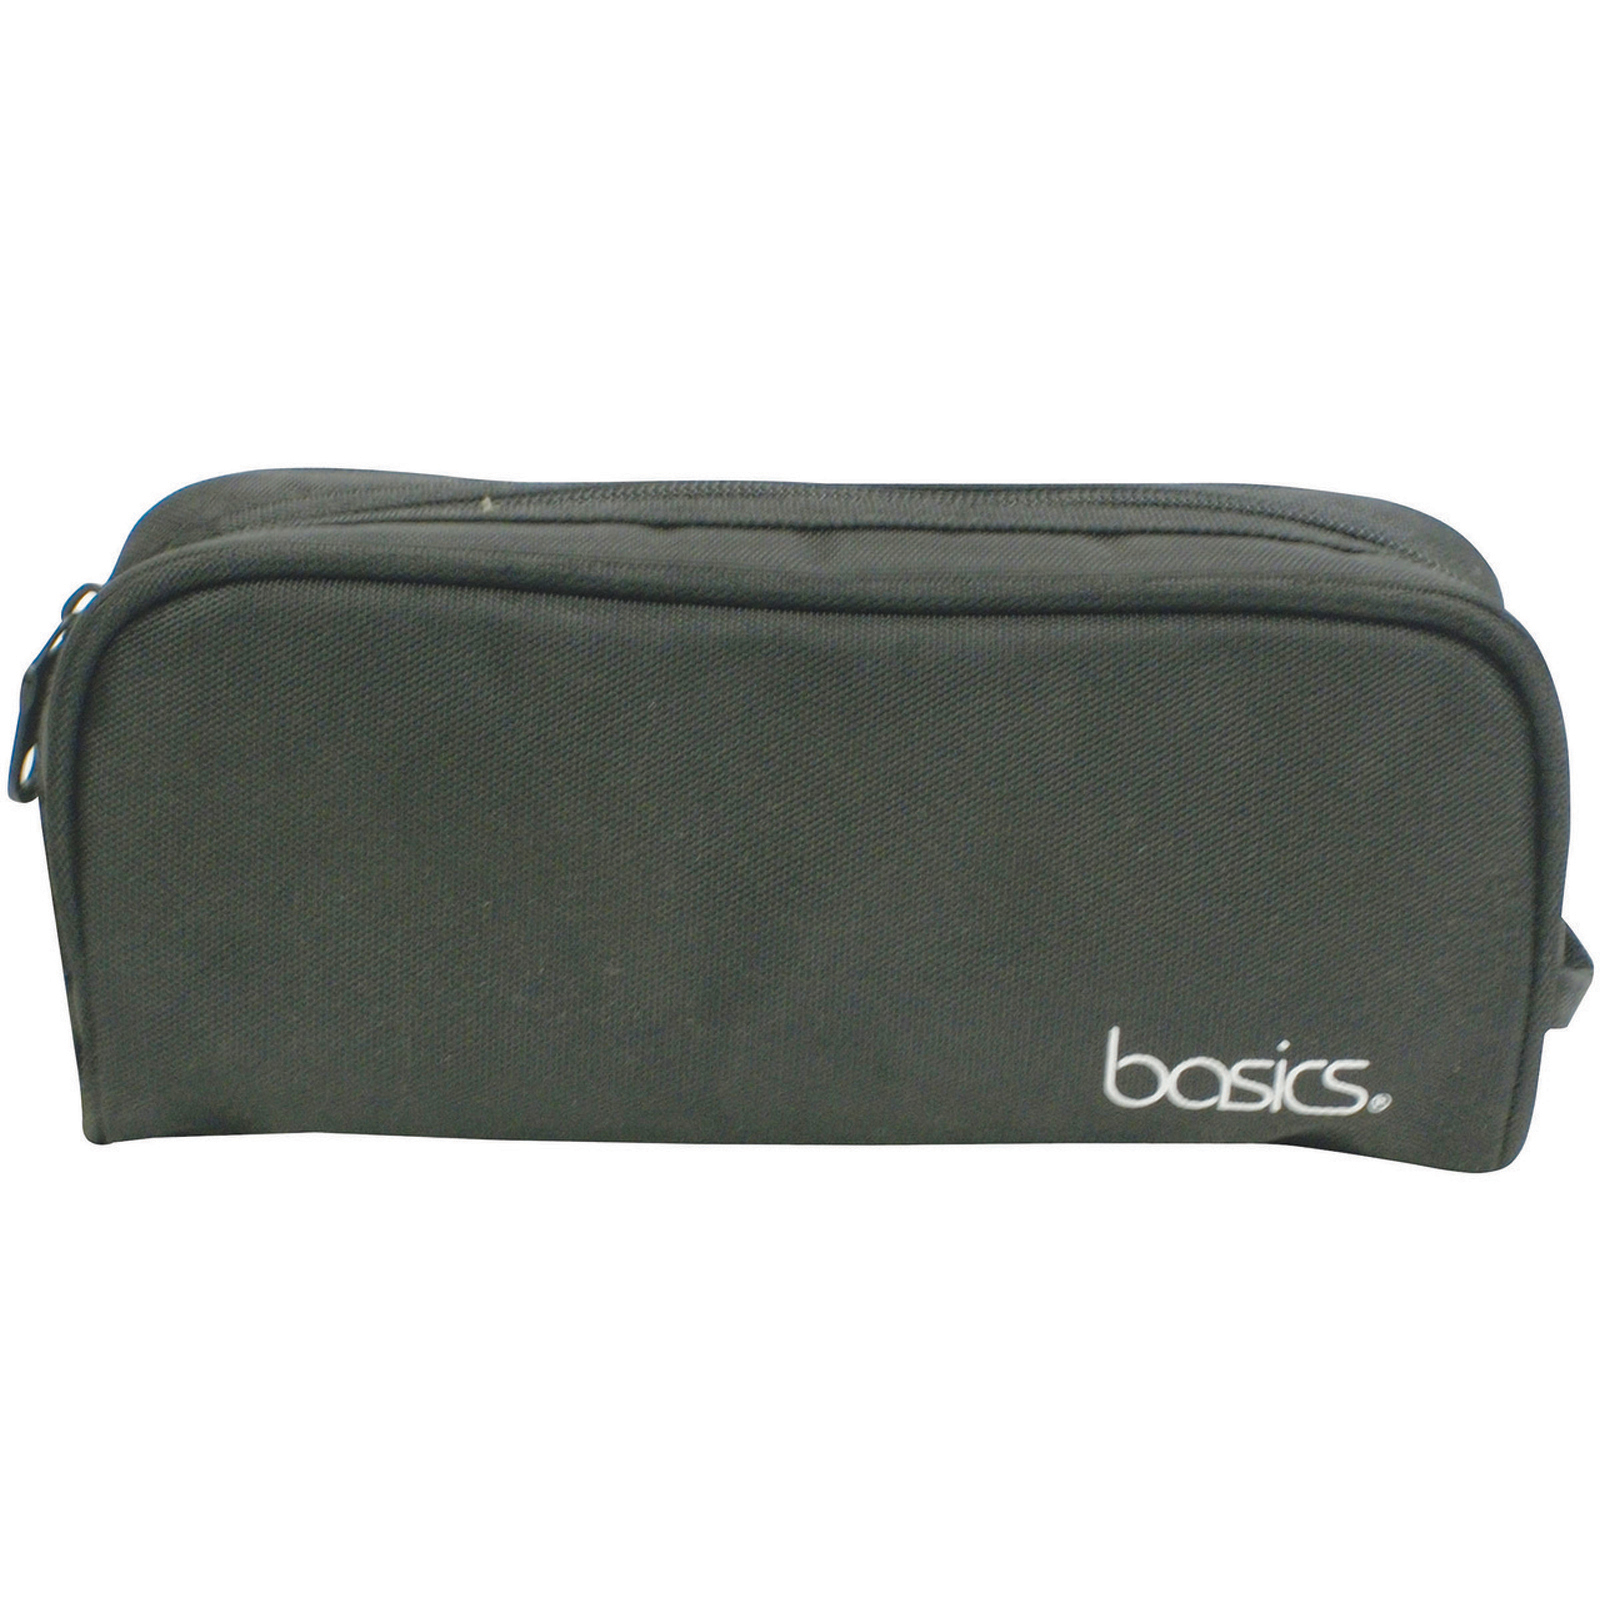 Shop for basics toiletry bag online at Target. Free shipping on purchases over $35 and save 5% every day with your Target REDcard.